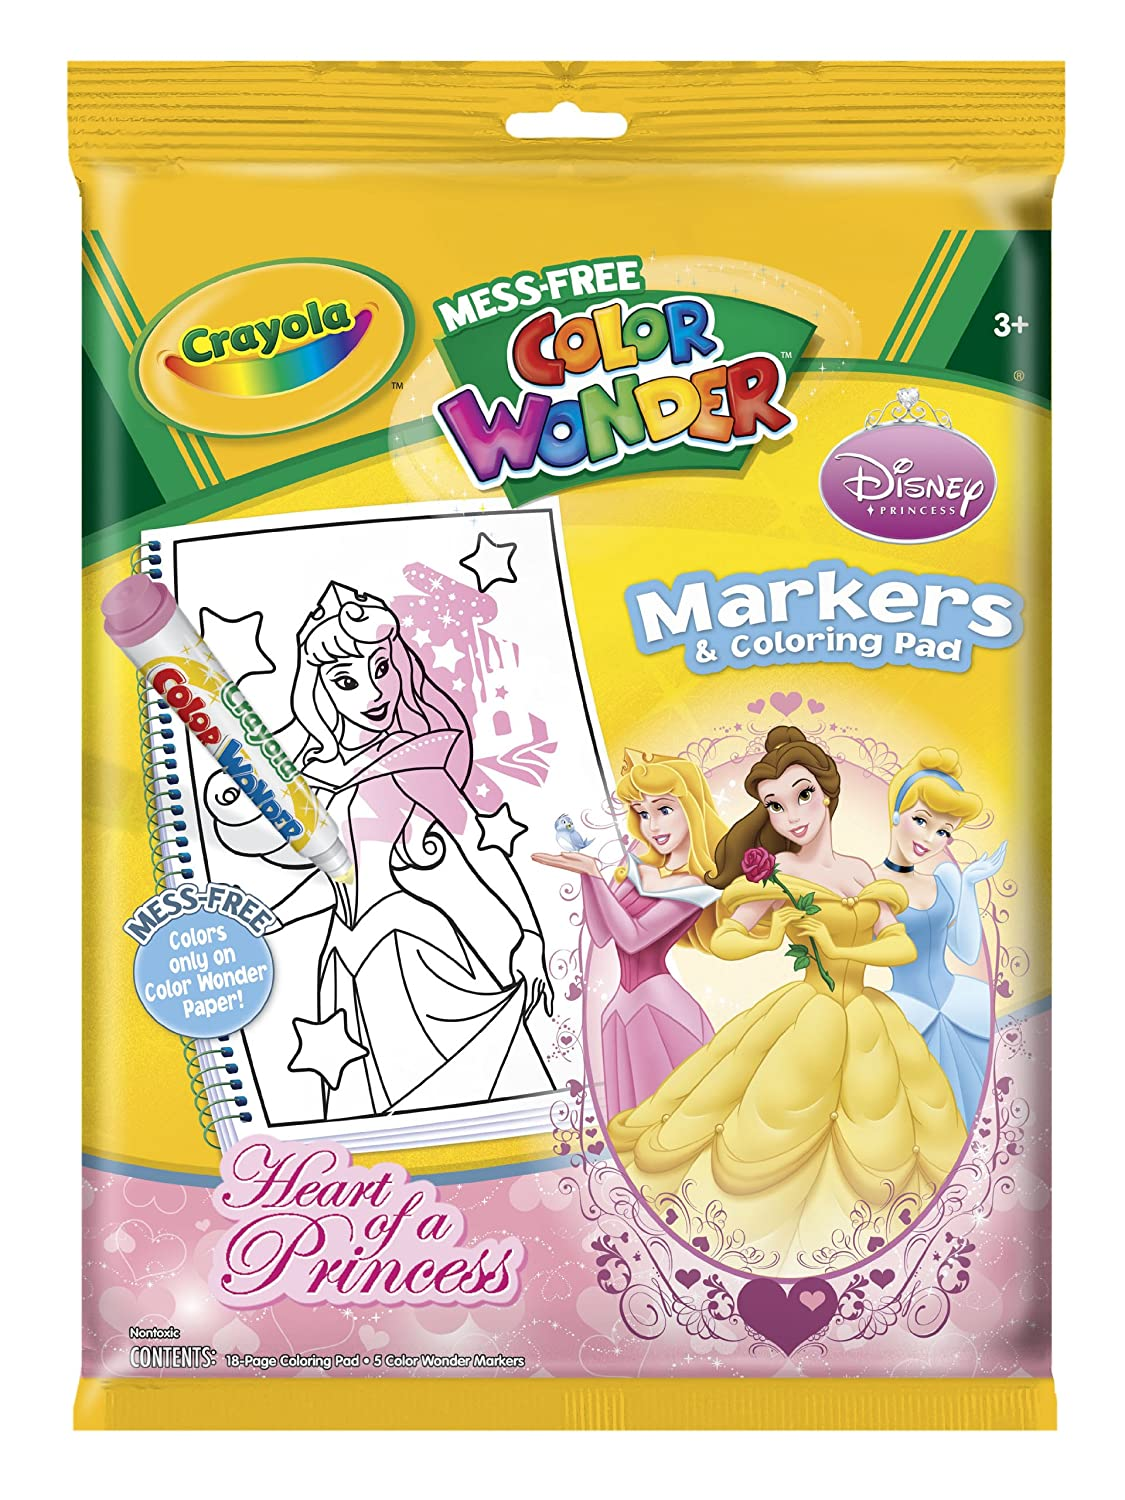 Disney princess coloring pages uk - Crayola Mess Free Color Wonder Disney Princess Markers Coloring Pad Disney Princess Amazon Co Uk Toys Games